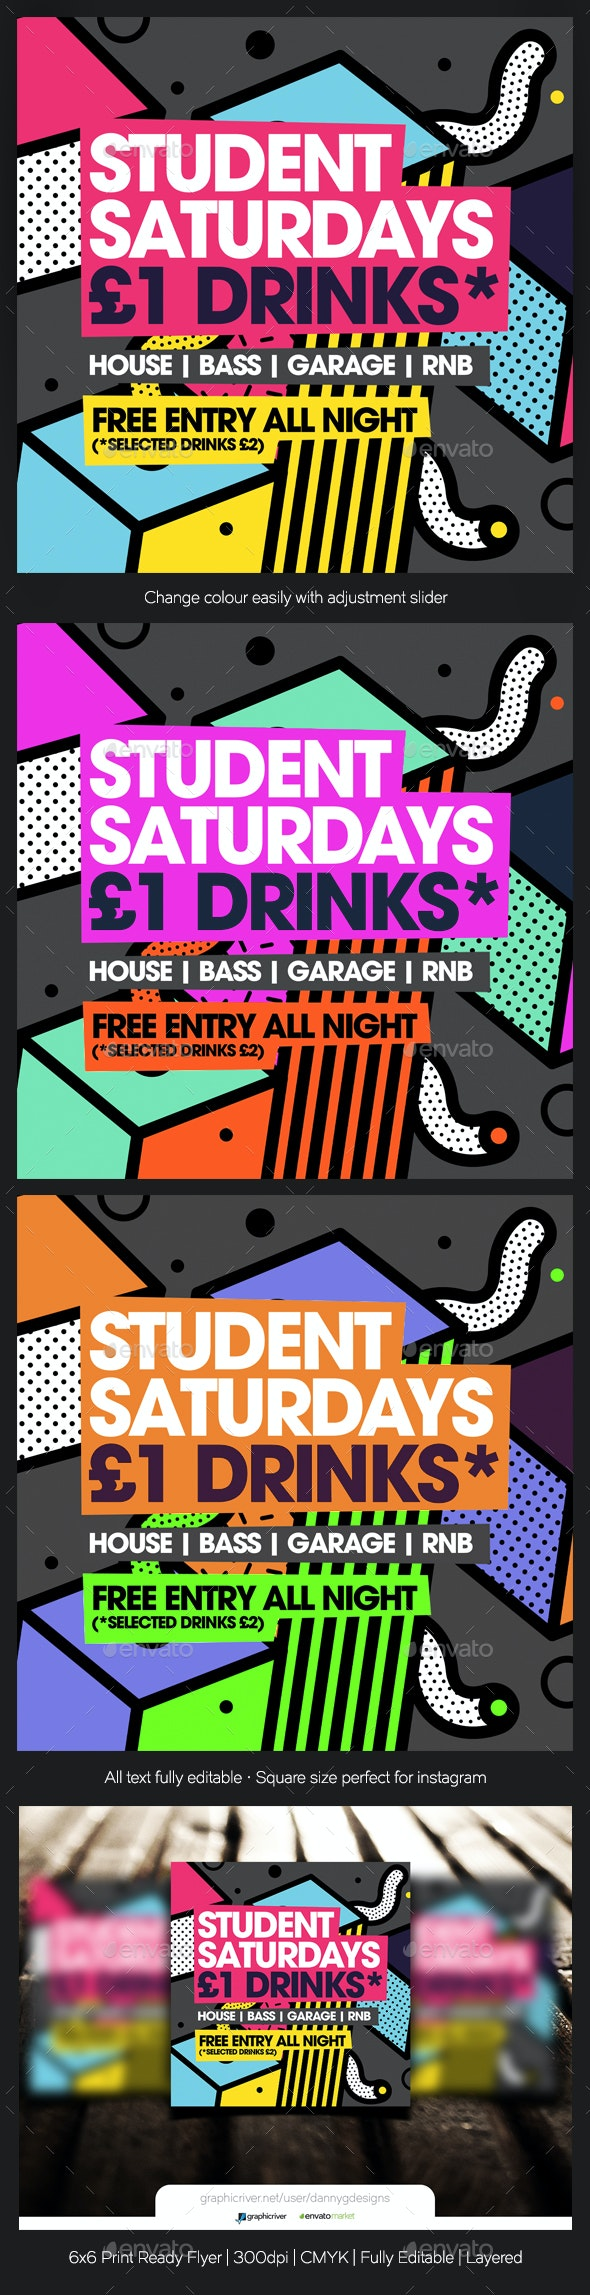 Student Saturdays Commercial Club Flyer - Clubs & Parties Events